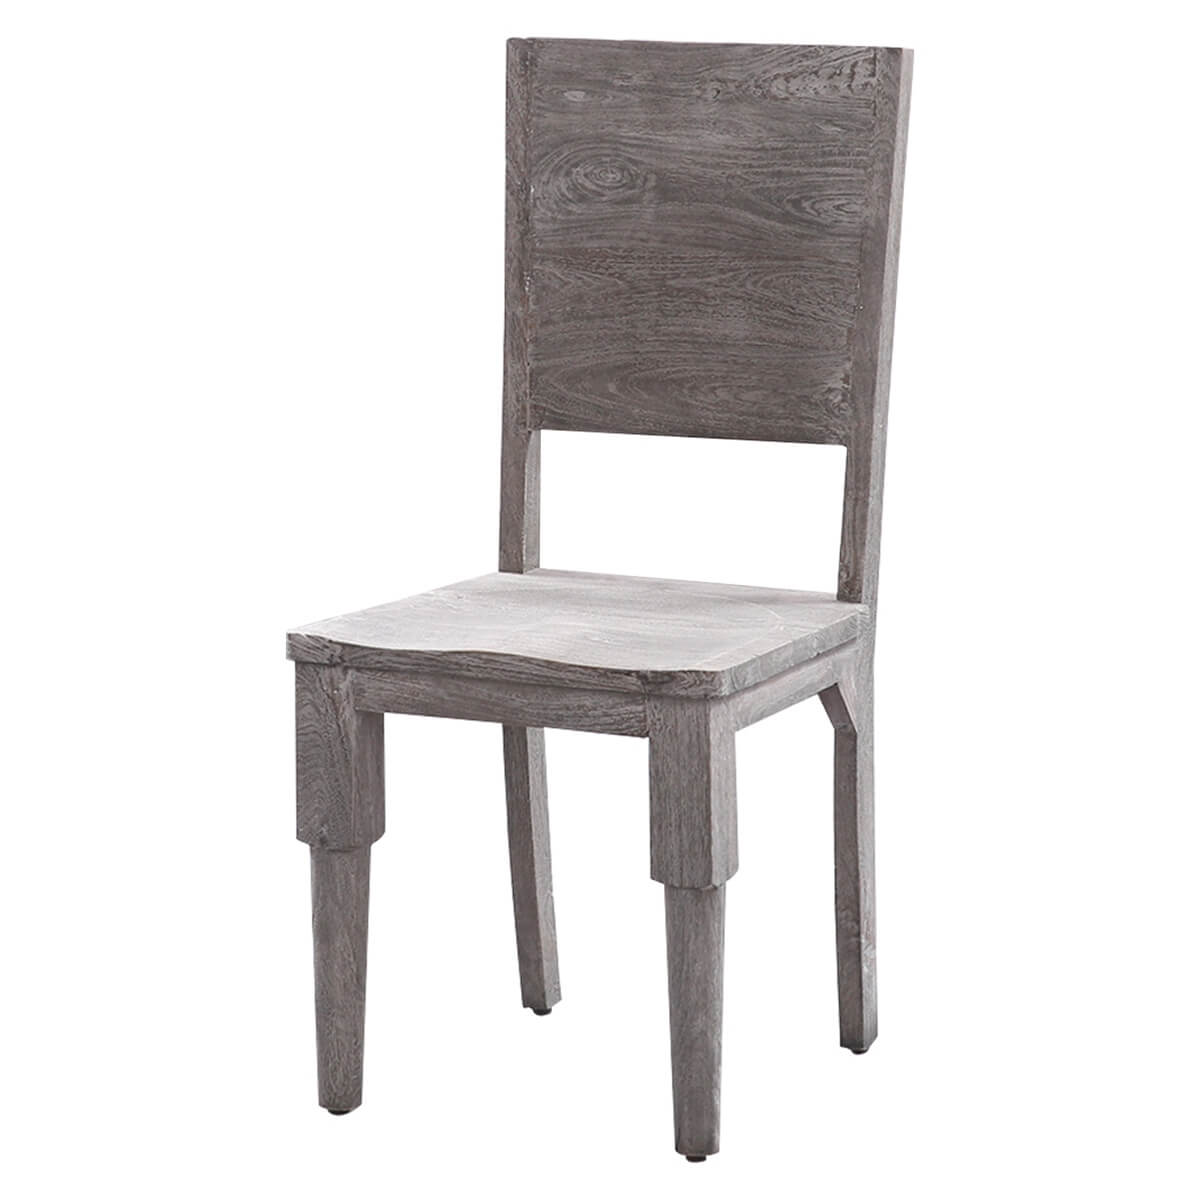 Busselton Rustic Solid Wood Farmhouse Dining Chair